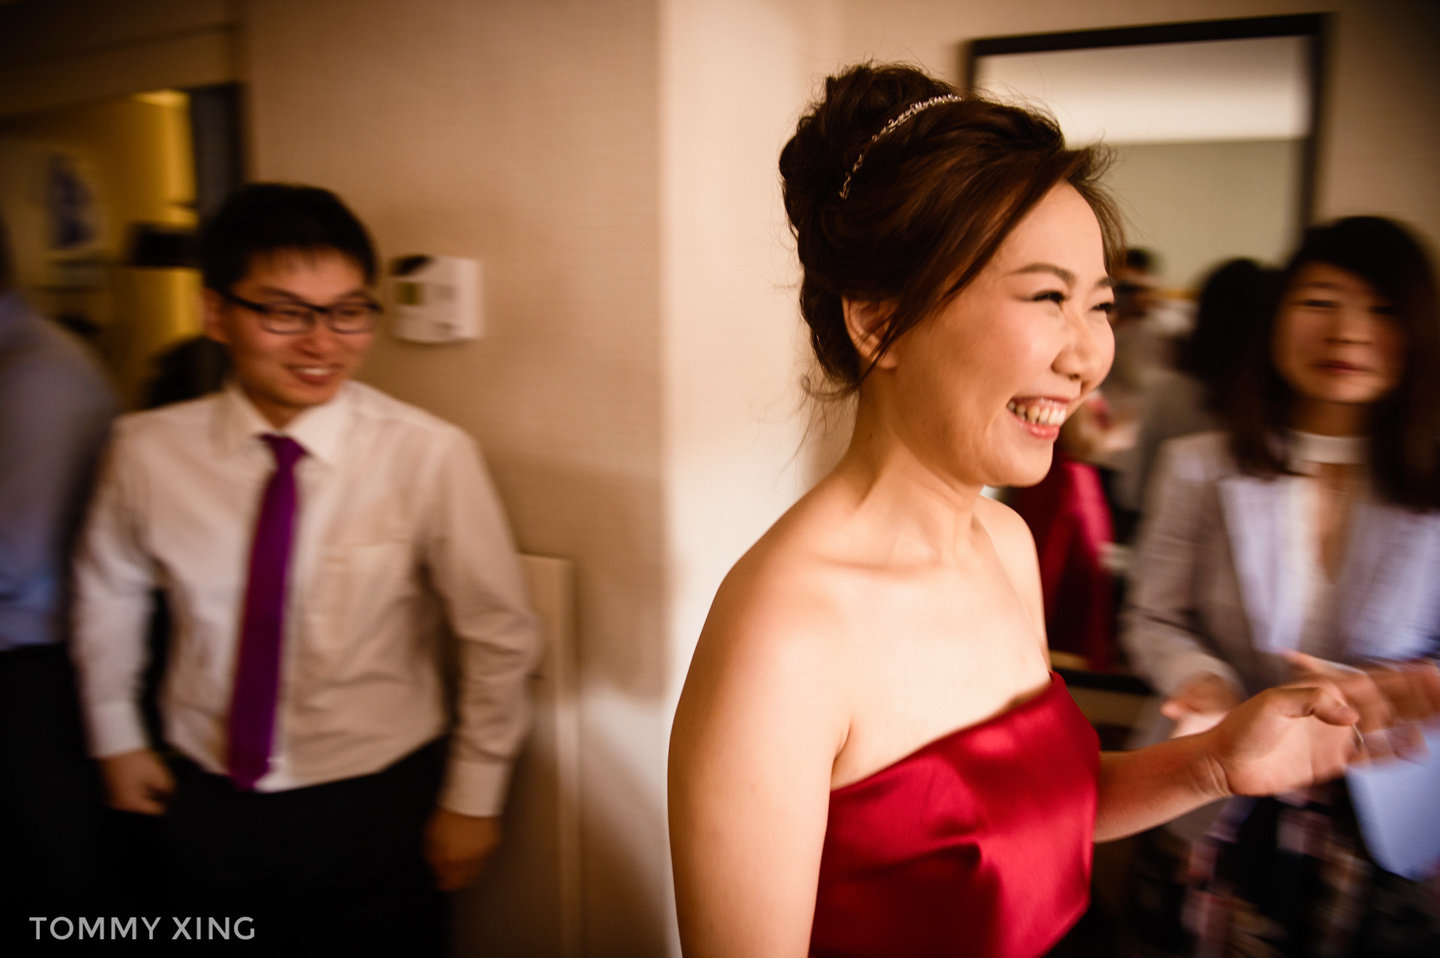 Los Angeles Wedding Photographer 洛杉矶婚礼婚纱摄影师 Tommy Xing-50.JPG